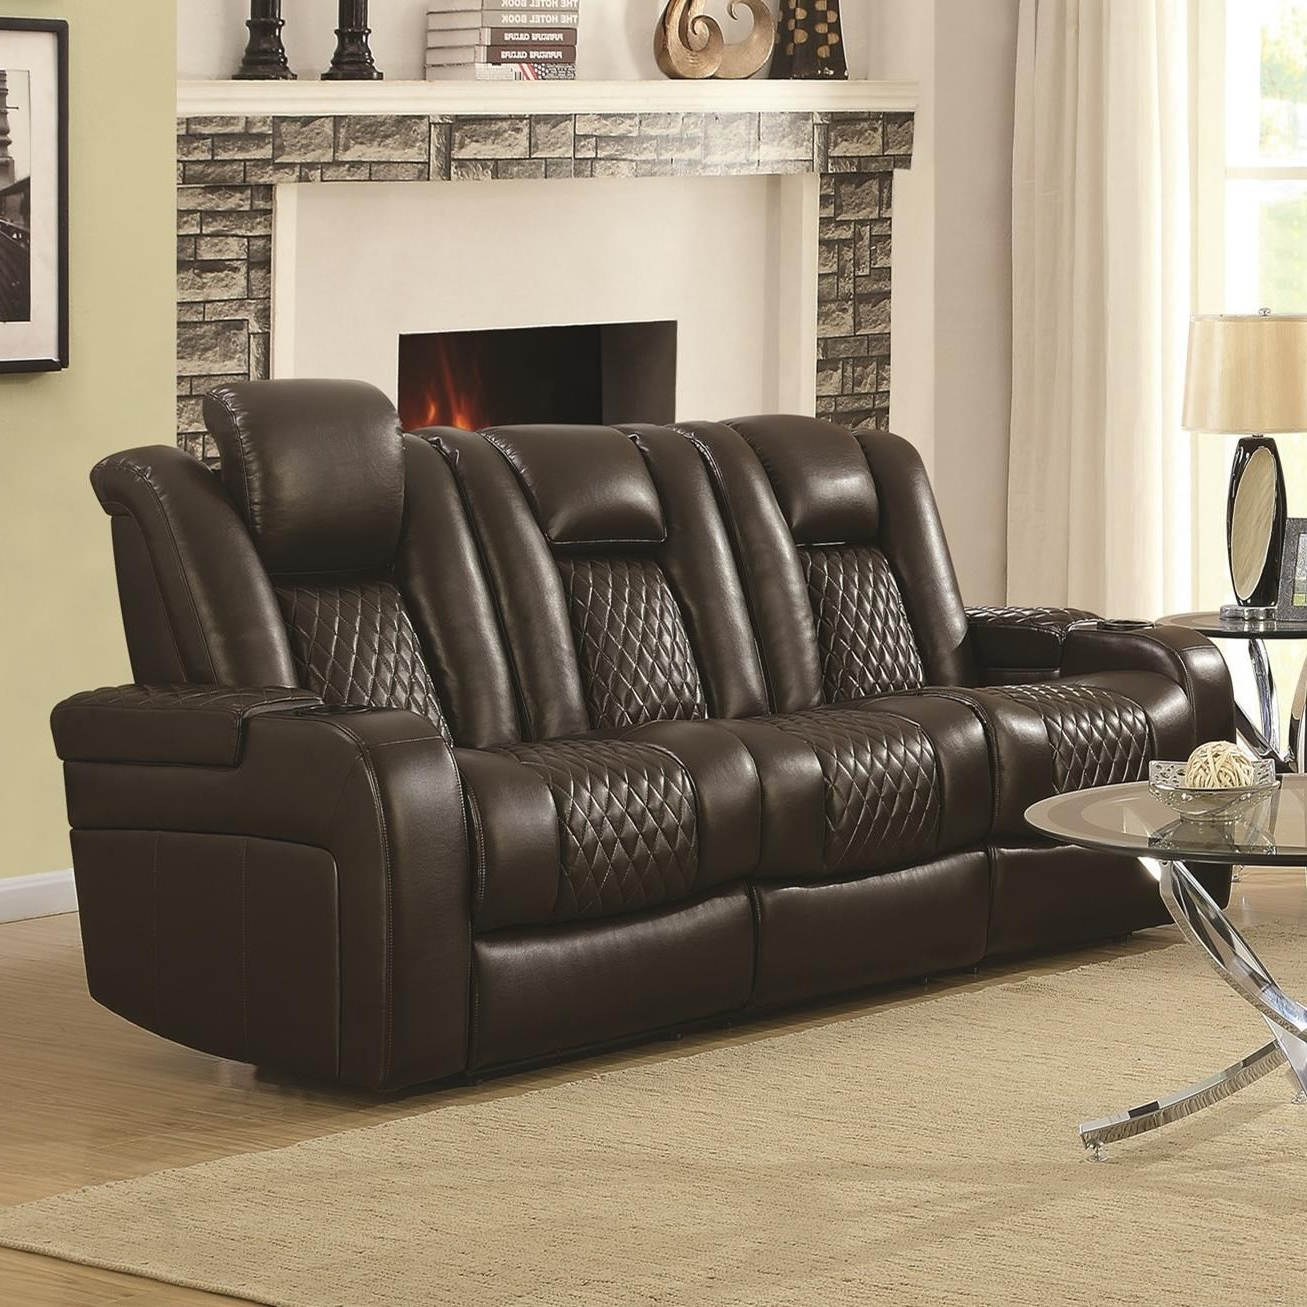 Recent Expedition Brown Power Reclining Sofas With Delangelo Casual Power Reclining Sofa With Cup Holders (View 11 of 20)